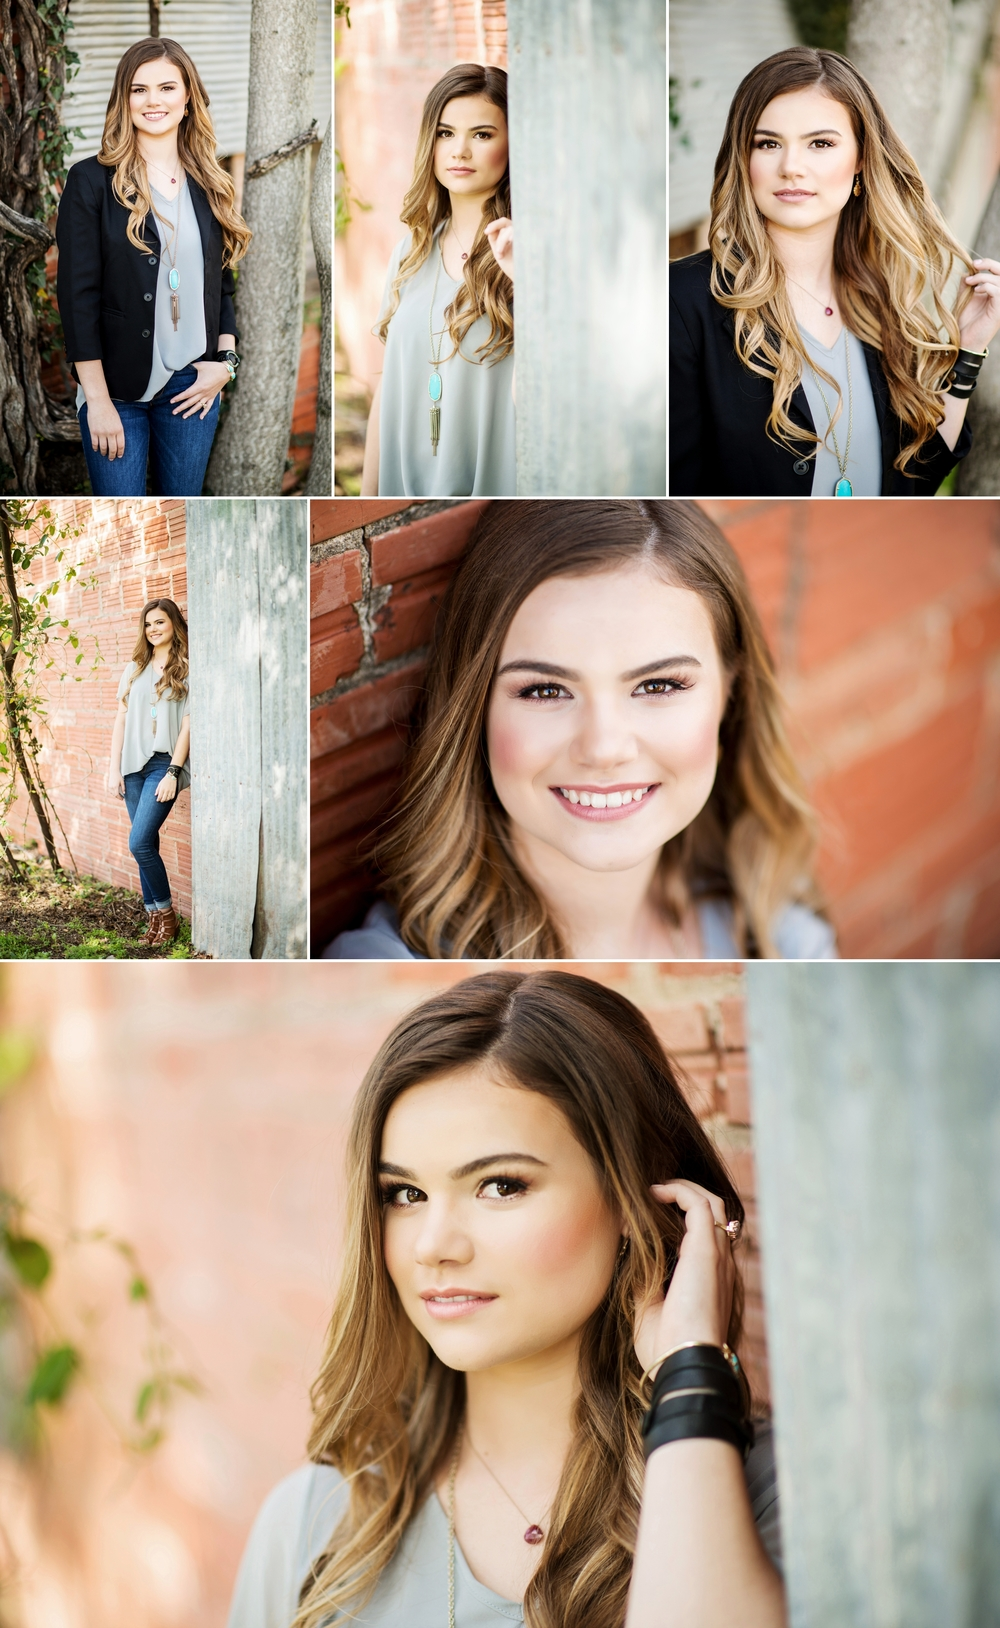 Austin High Senior Portrait photographer, Urban senior picture session, Heidi Knight Photography, Buda, TX.jpg